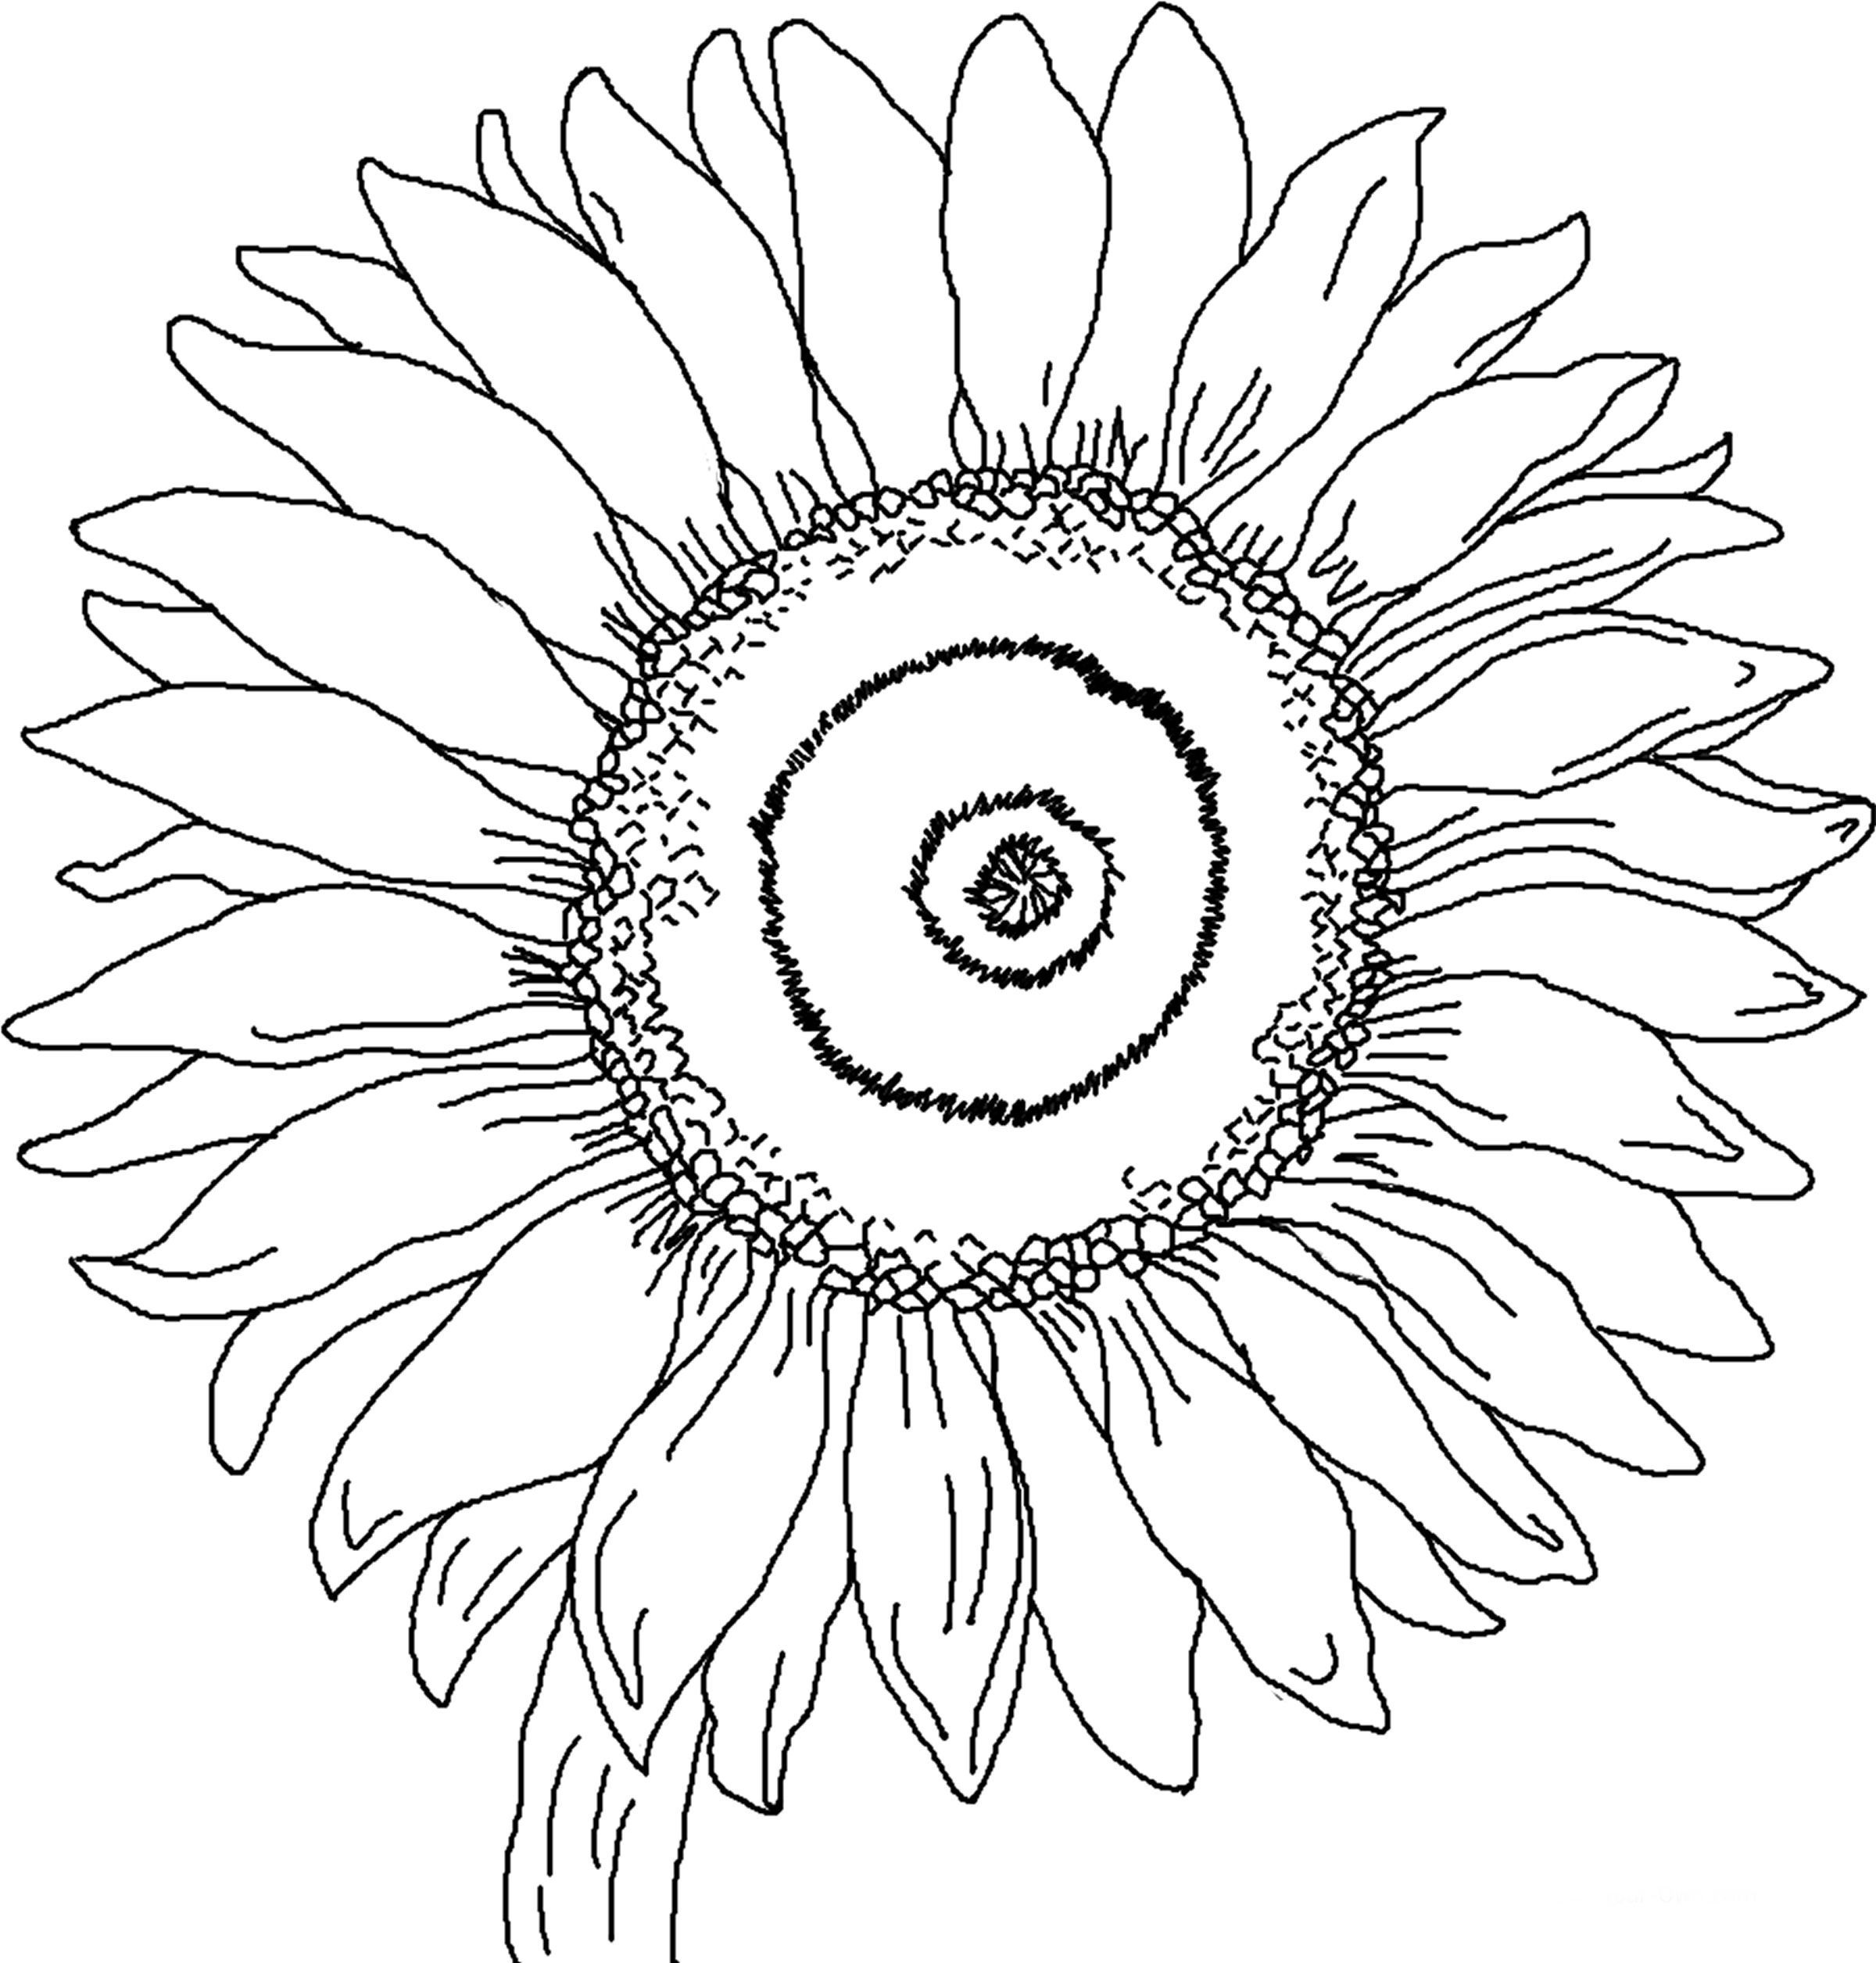 Sunflower Coloring Pages | crafts | Pinterest